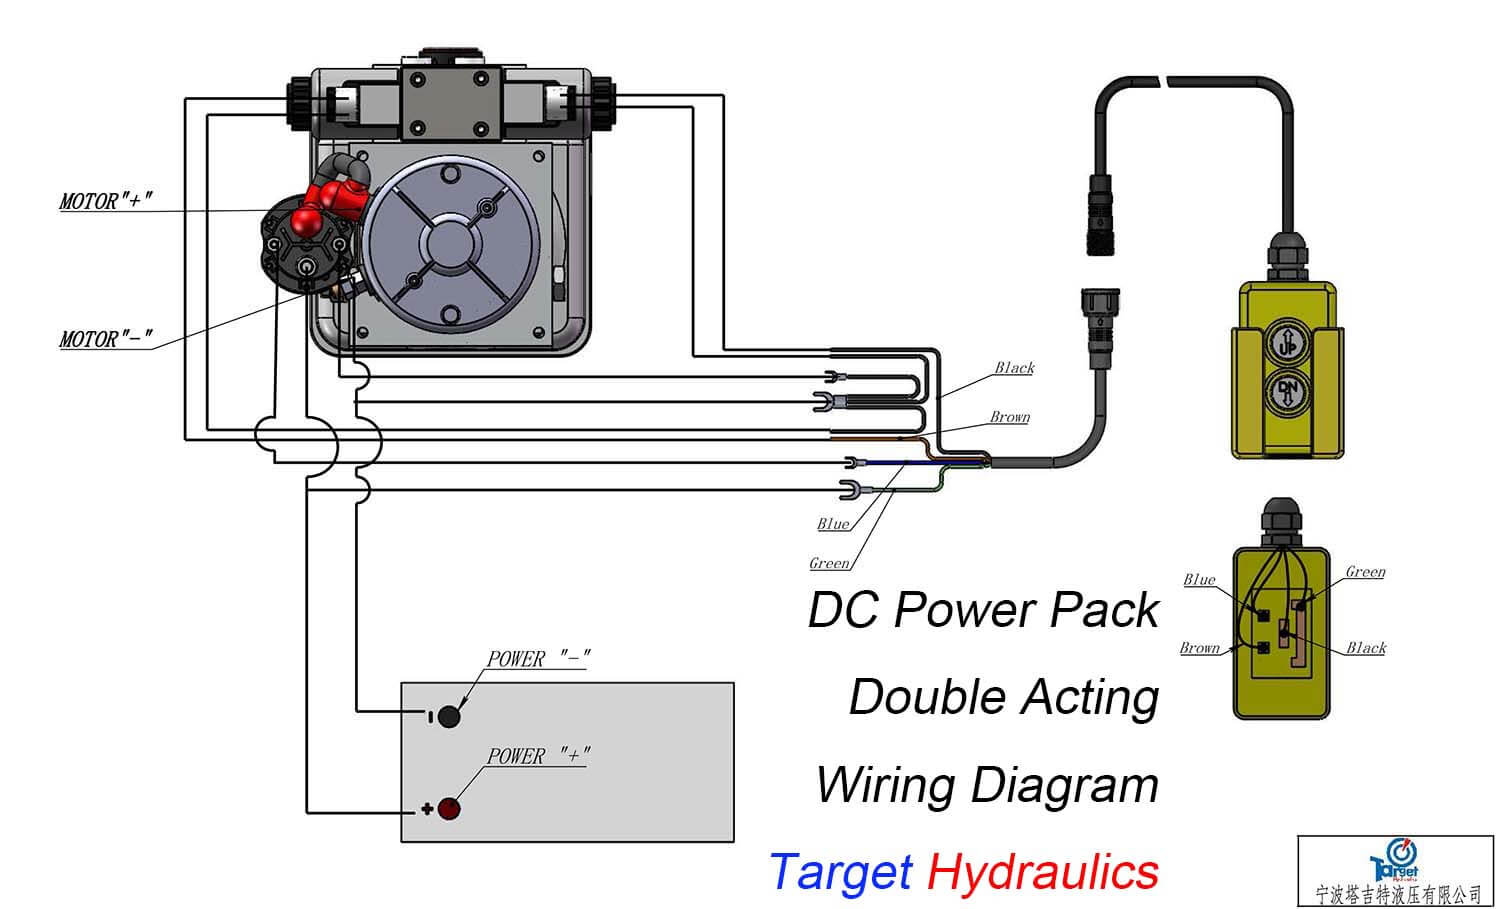 How to Wire_DC Motor Double Acting Power Pack how to wire hydraulic power pack,power unit diagram design dump trailer hydraulic pump wiring diagram at aneh.co